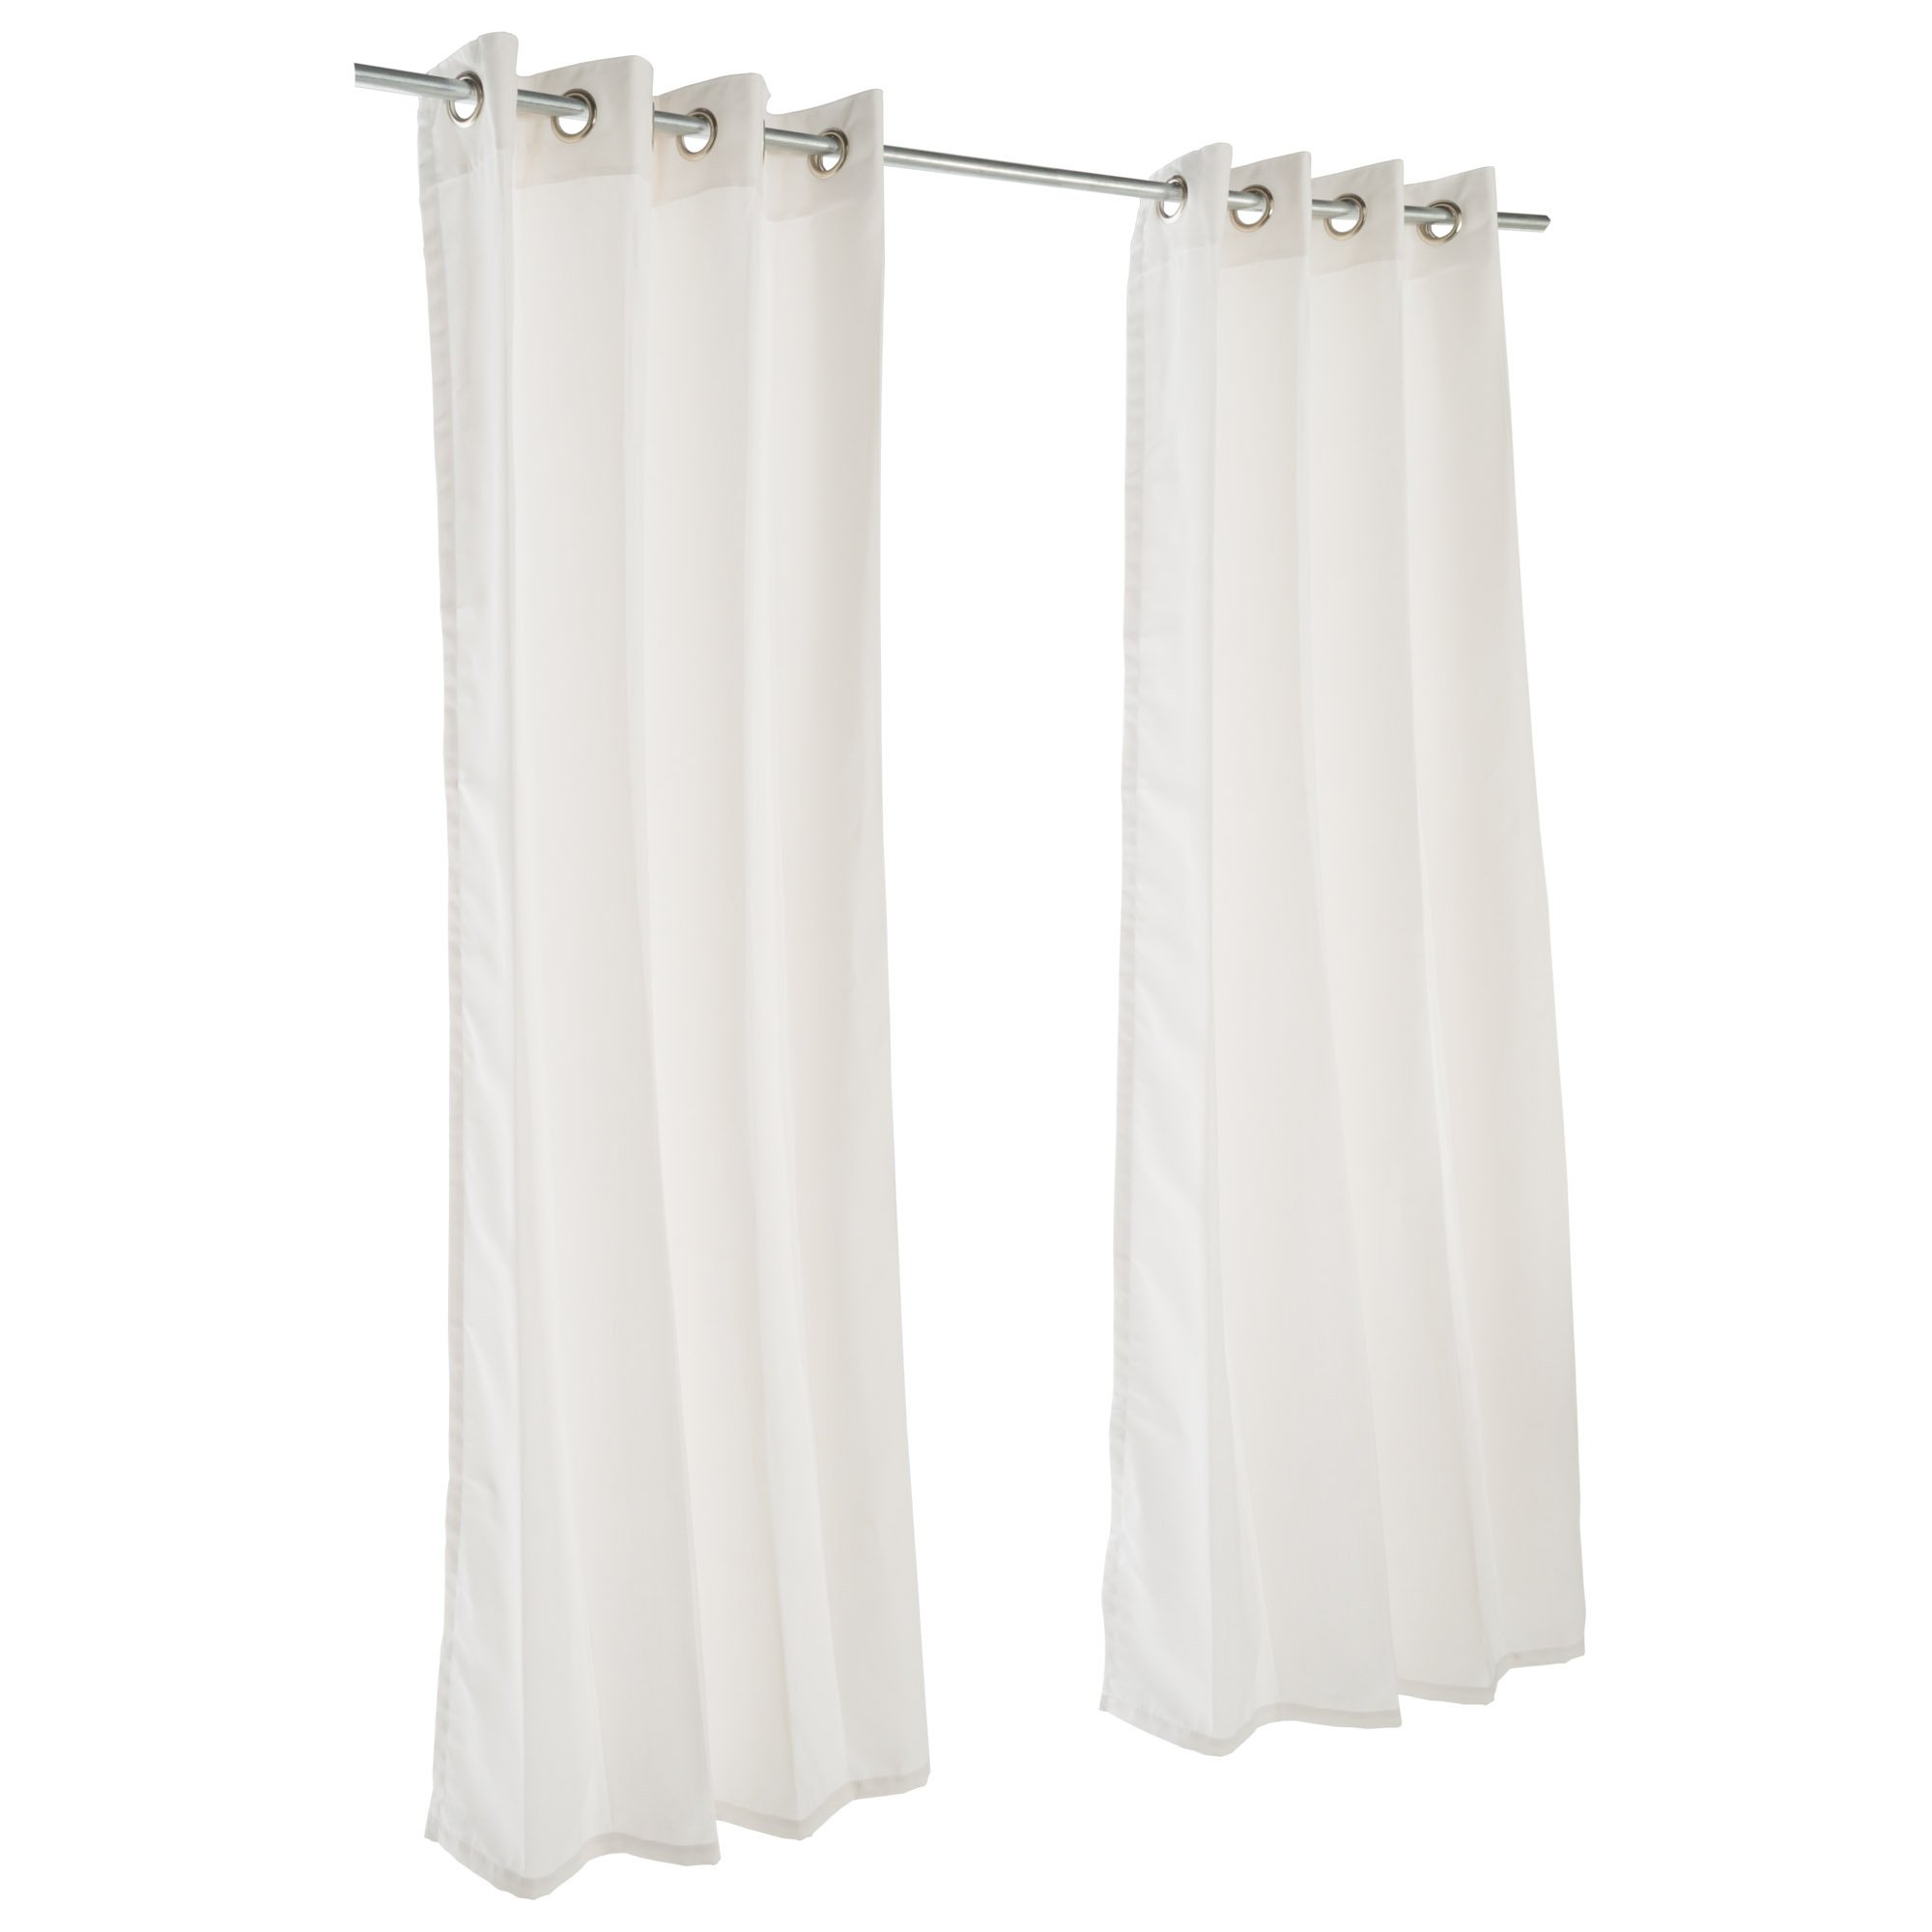 Sunbrella Outdoor Curtain with Nickel Grommets - Canvas White (50 in. W x 120 in. L)